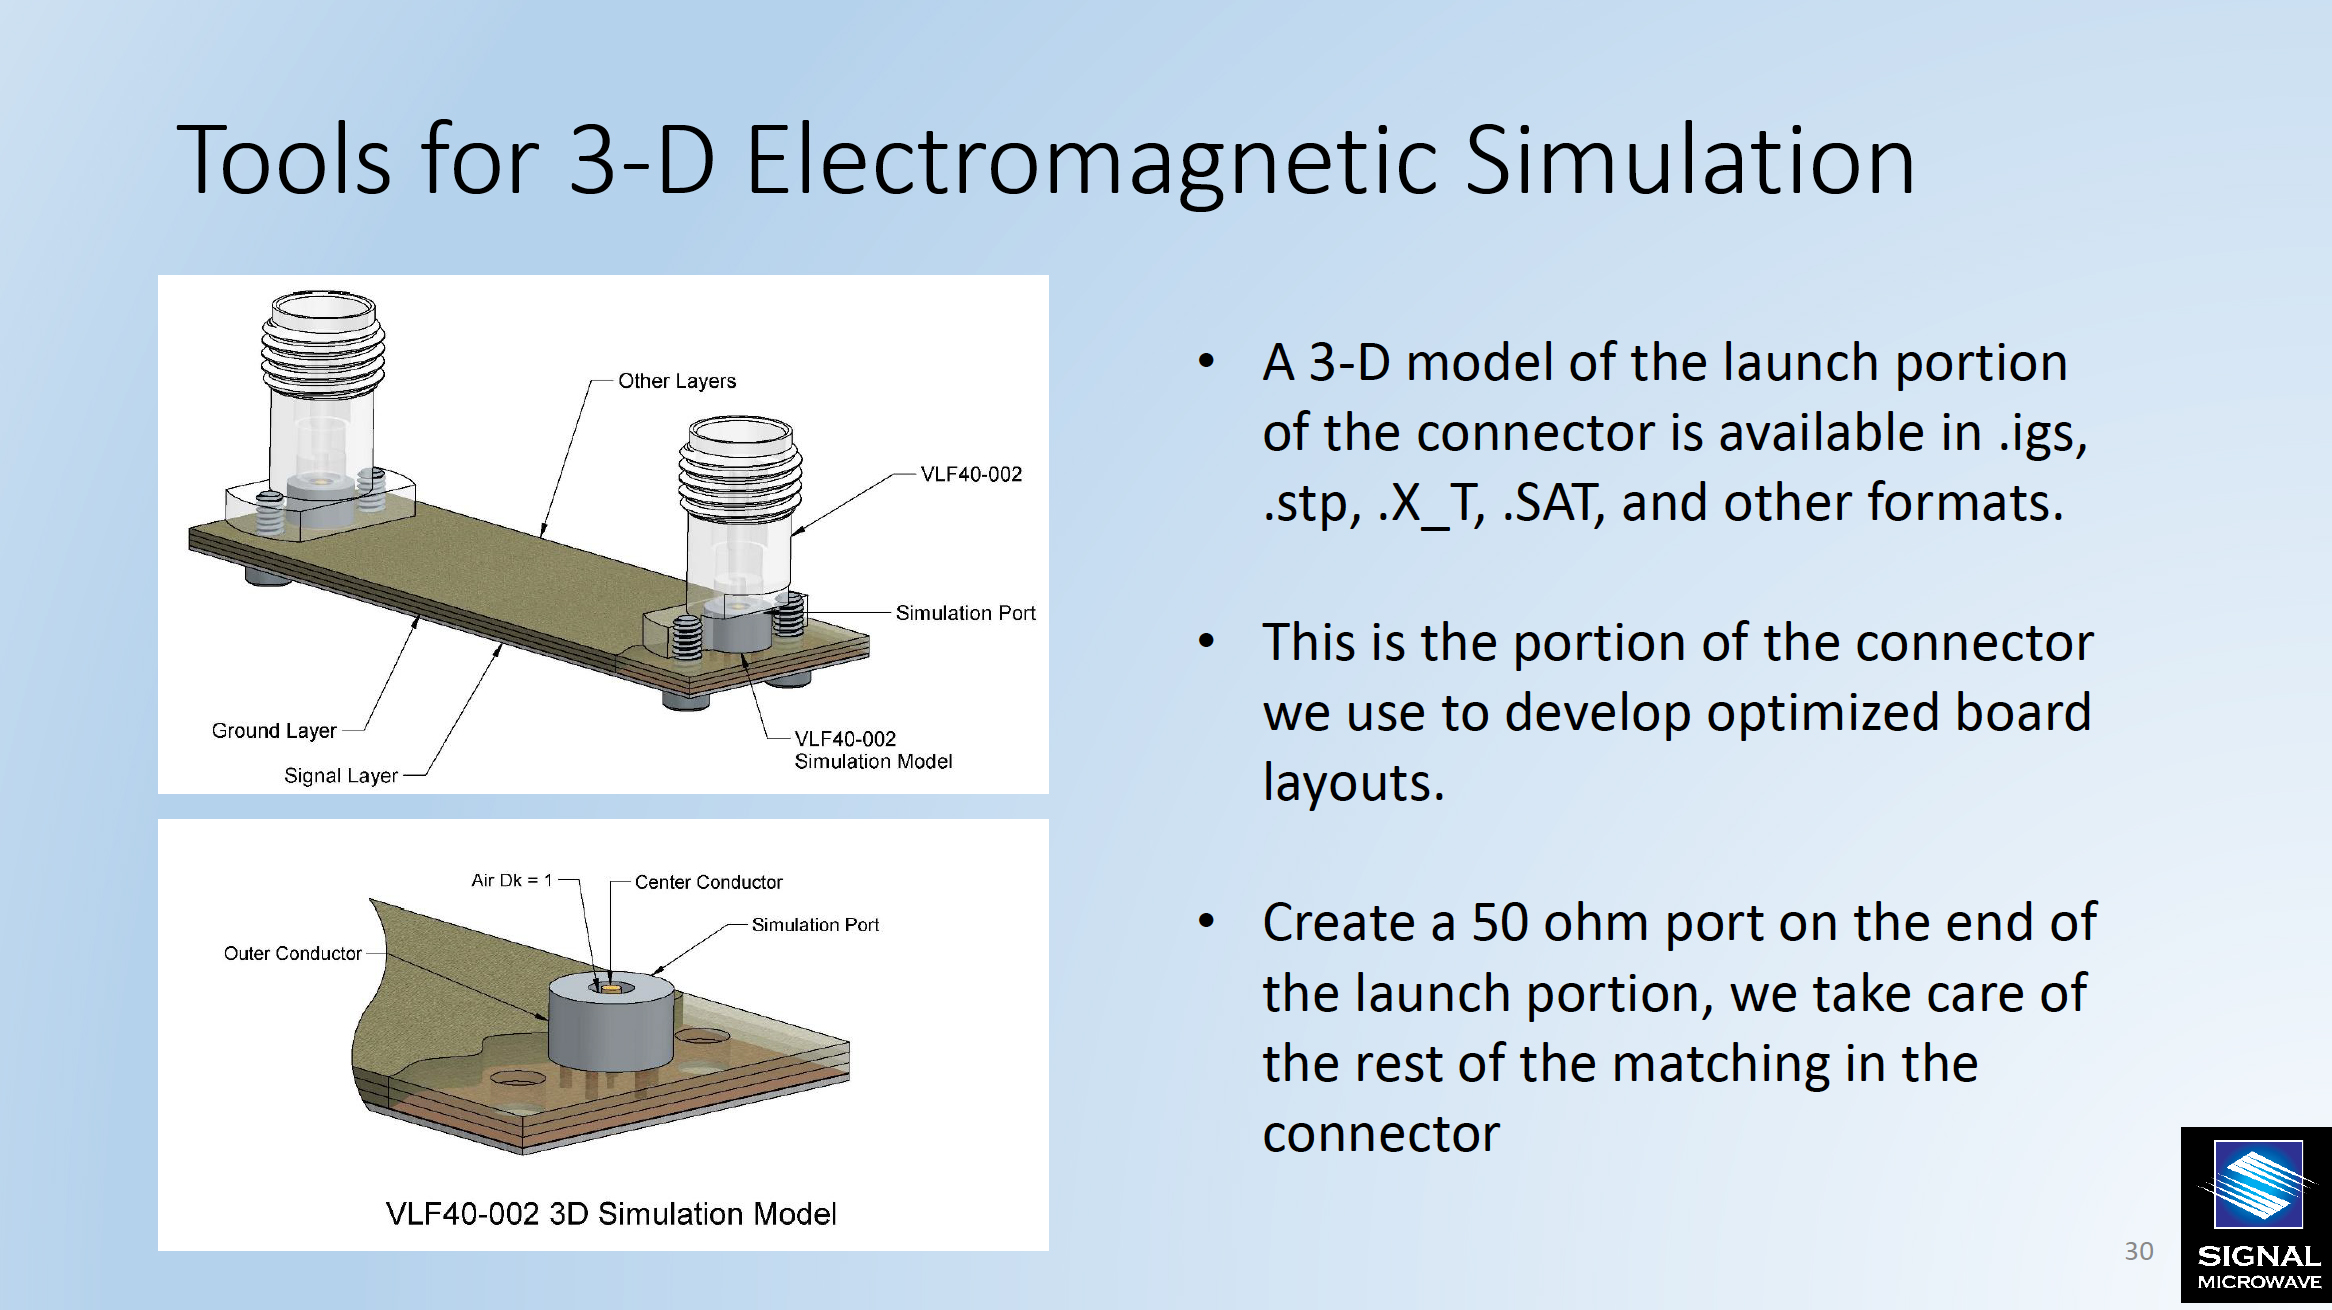 Tools for 3D Electromagnetic Simulation